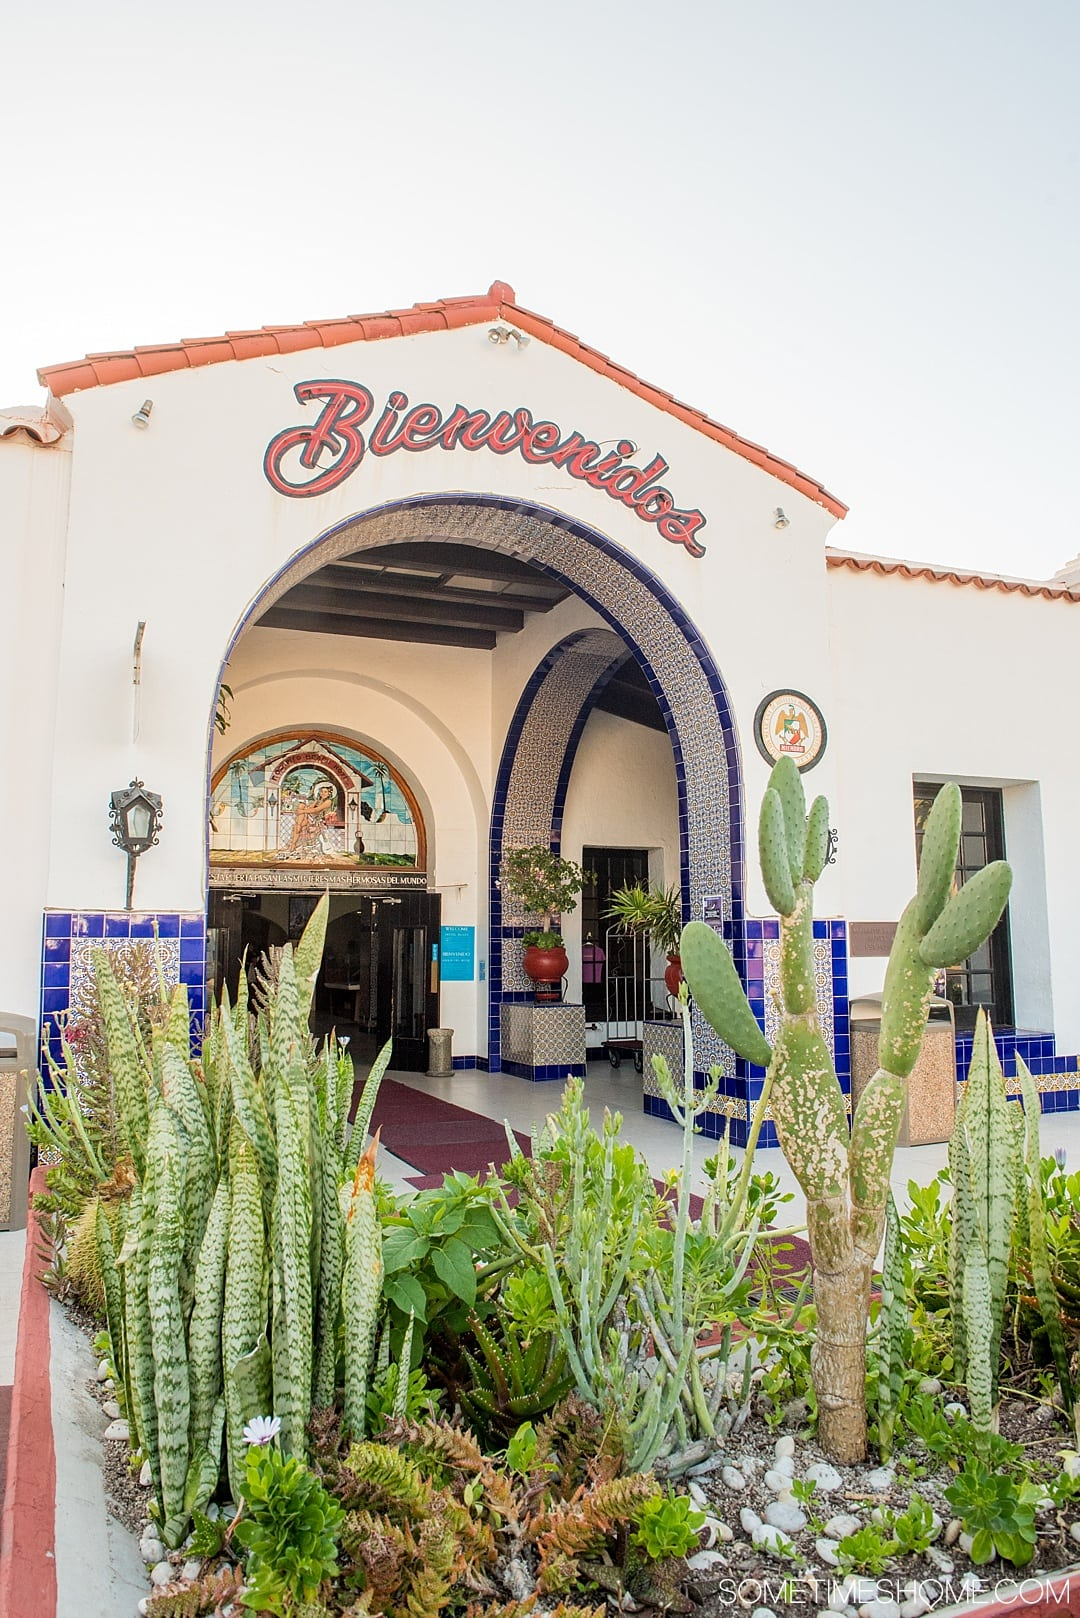 The best photo location in Rosarito Beach, Mexico. This beautiful beach city is in the Baja California peninsula south of San Diego. It's a great day trip that offers sunsets, ocean views and great hotels, resorts and spas. Click through to see picture ideas for your visit! #RosaritoBeach #BajaCalifornia #SanDiegoDayTrip #RosaritoMexico #Mexico